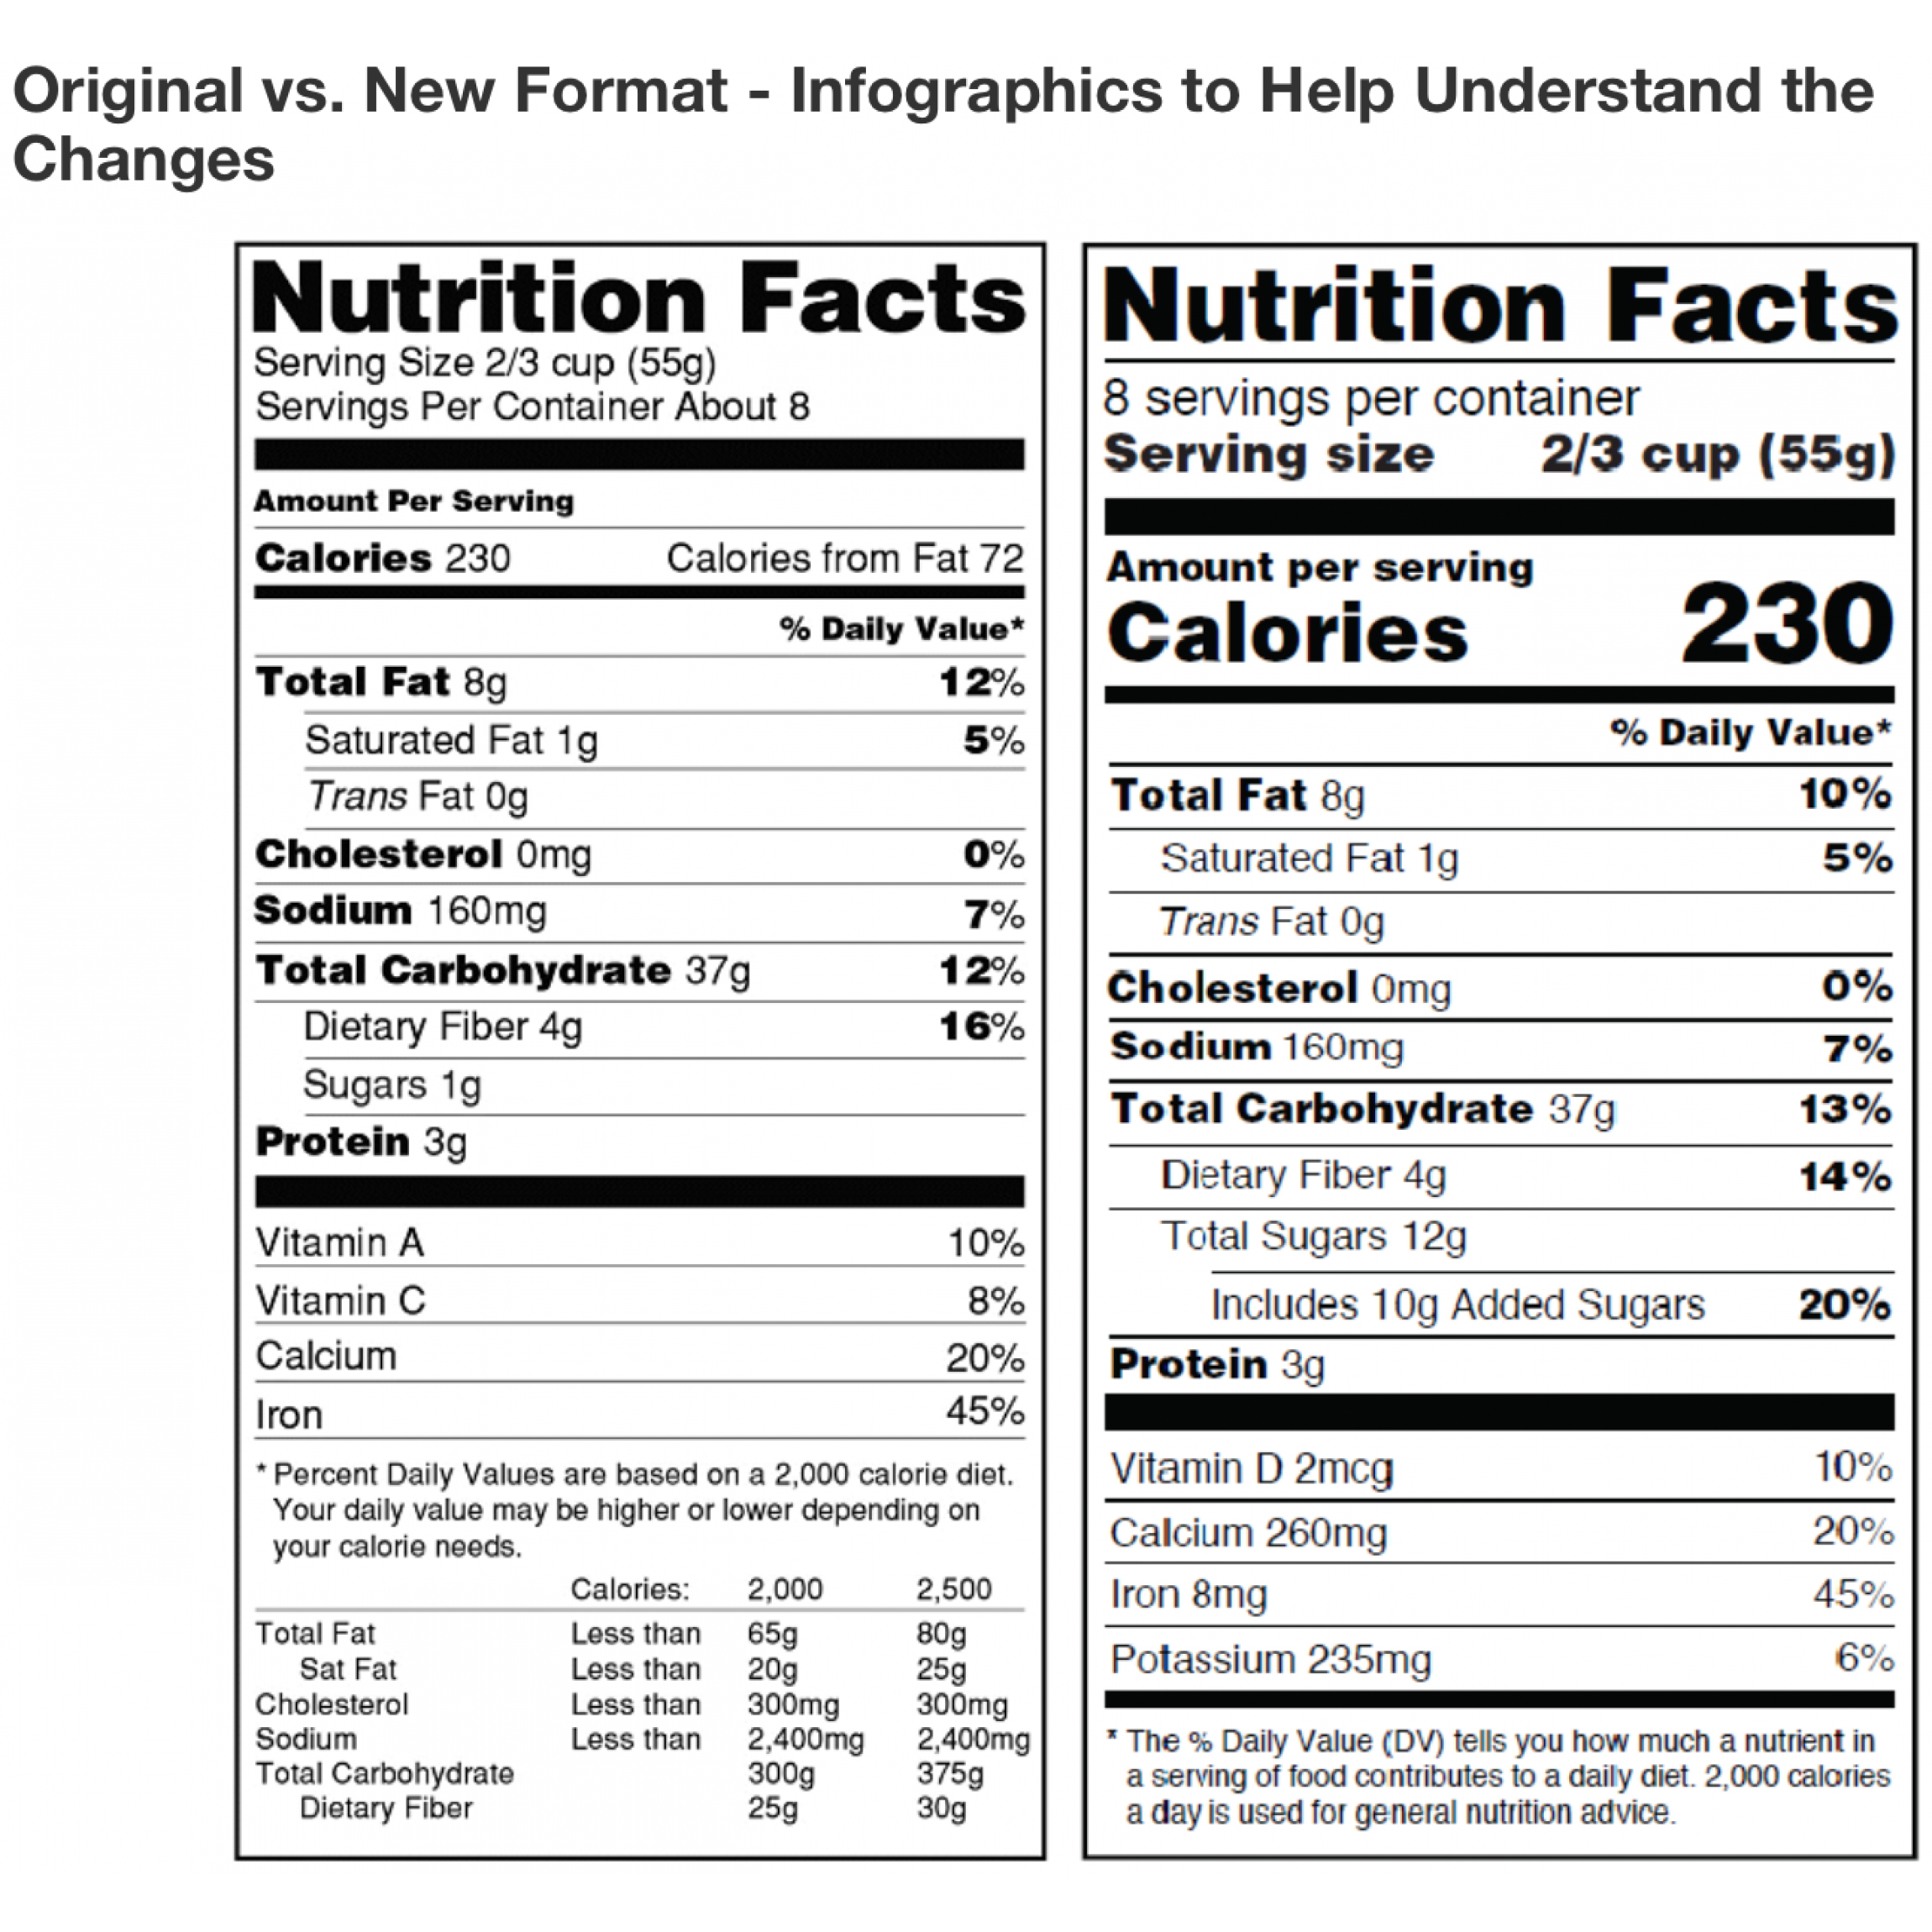 We'll help you update your Nutrition Fact Panels to get in compliance with new regulations.